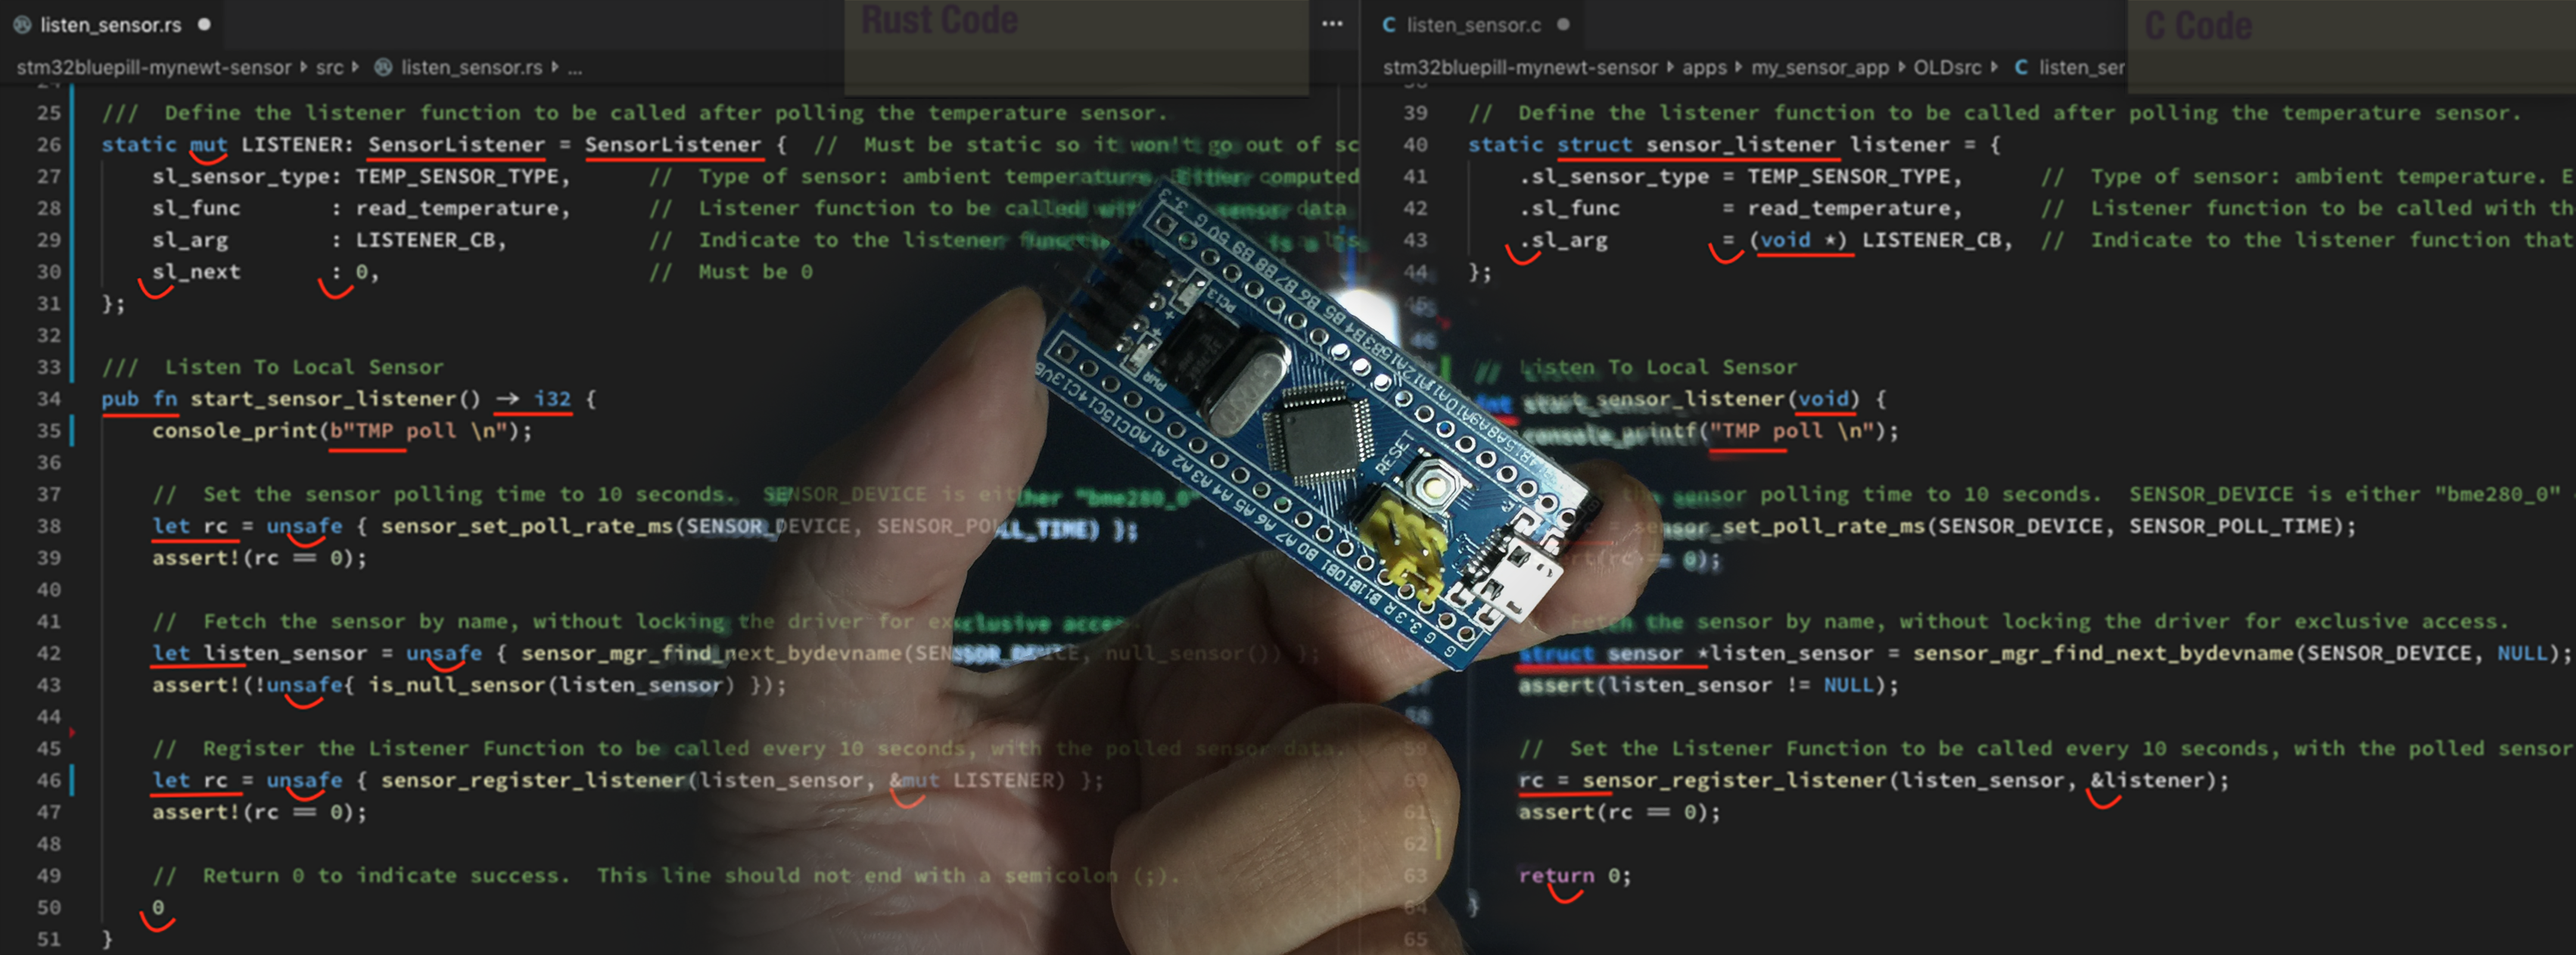 Hosting Embedded Rust apps on Apache Mynewt with STM32 Blue Pill